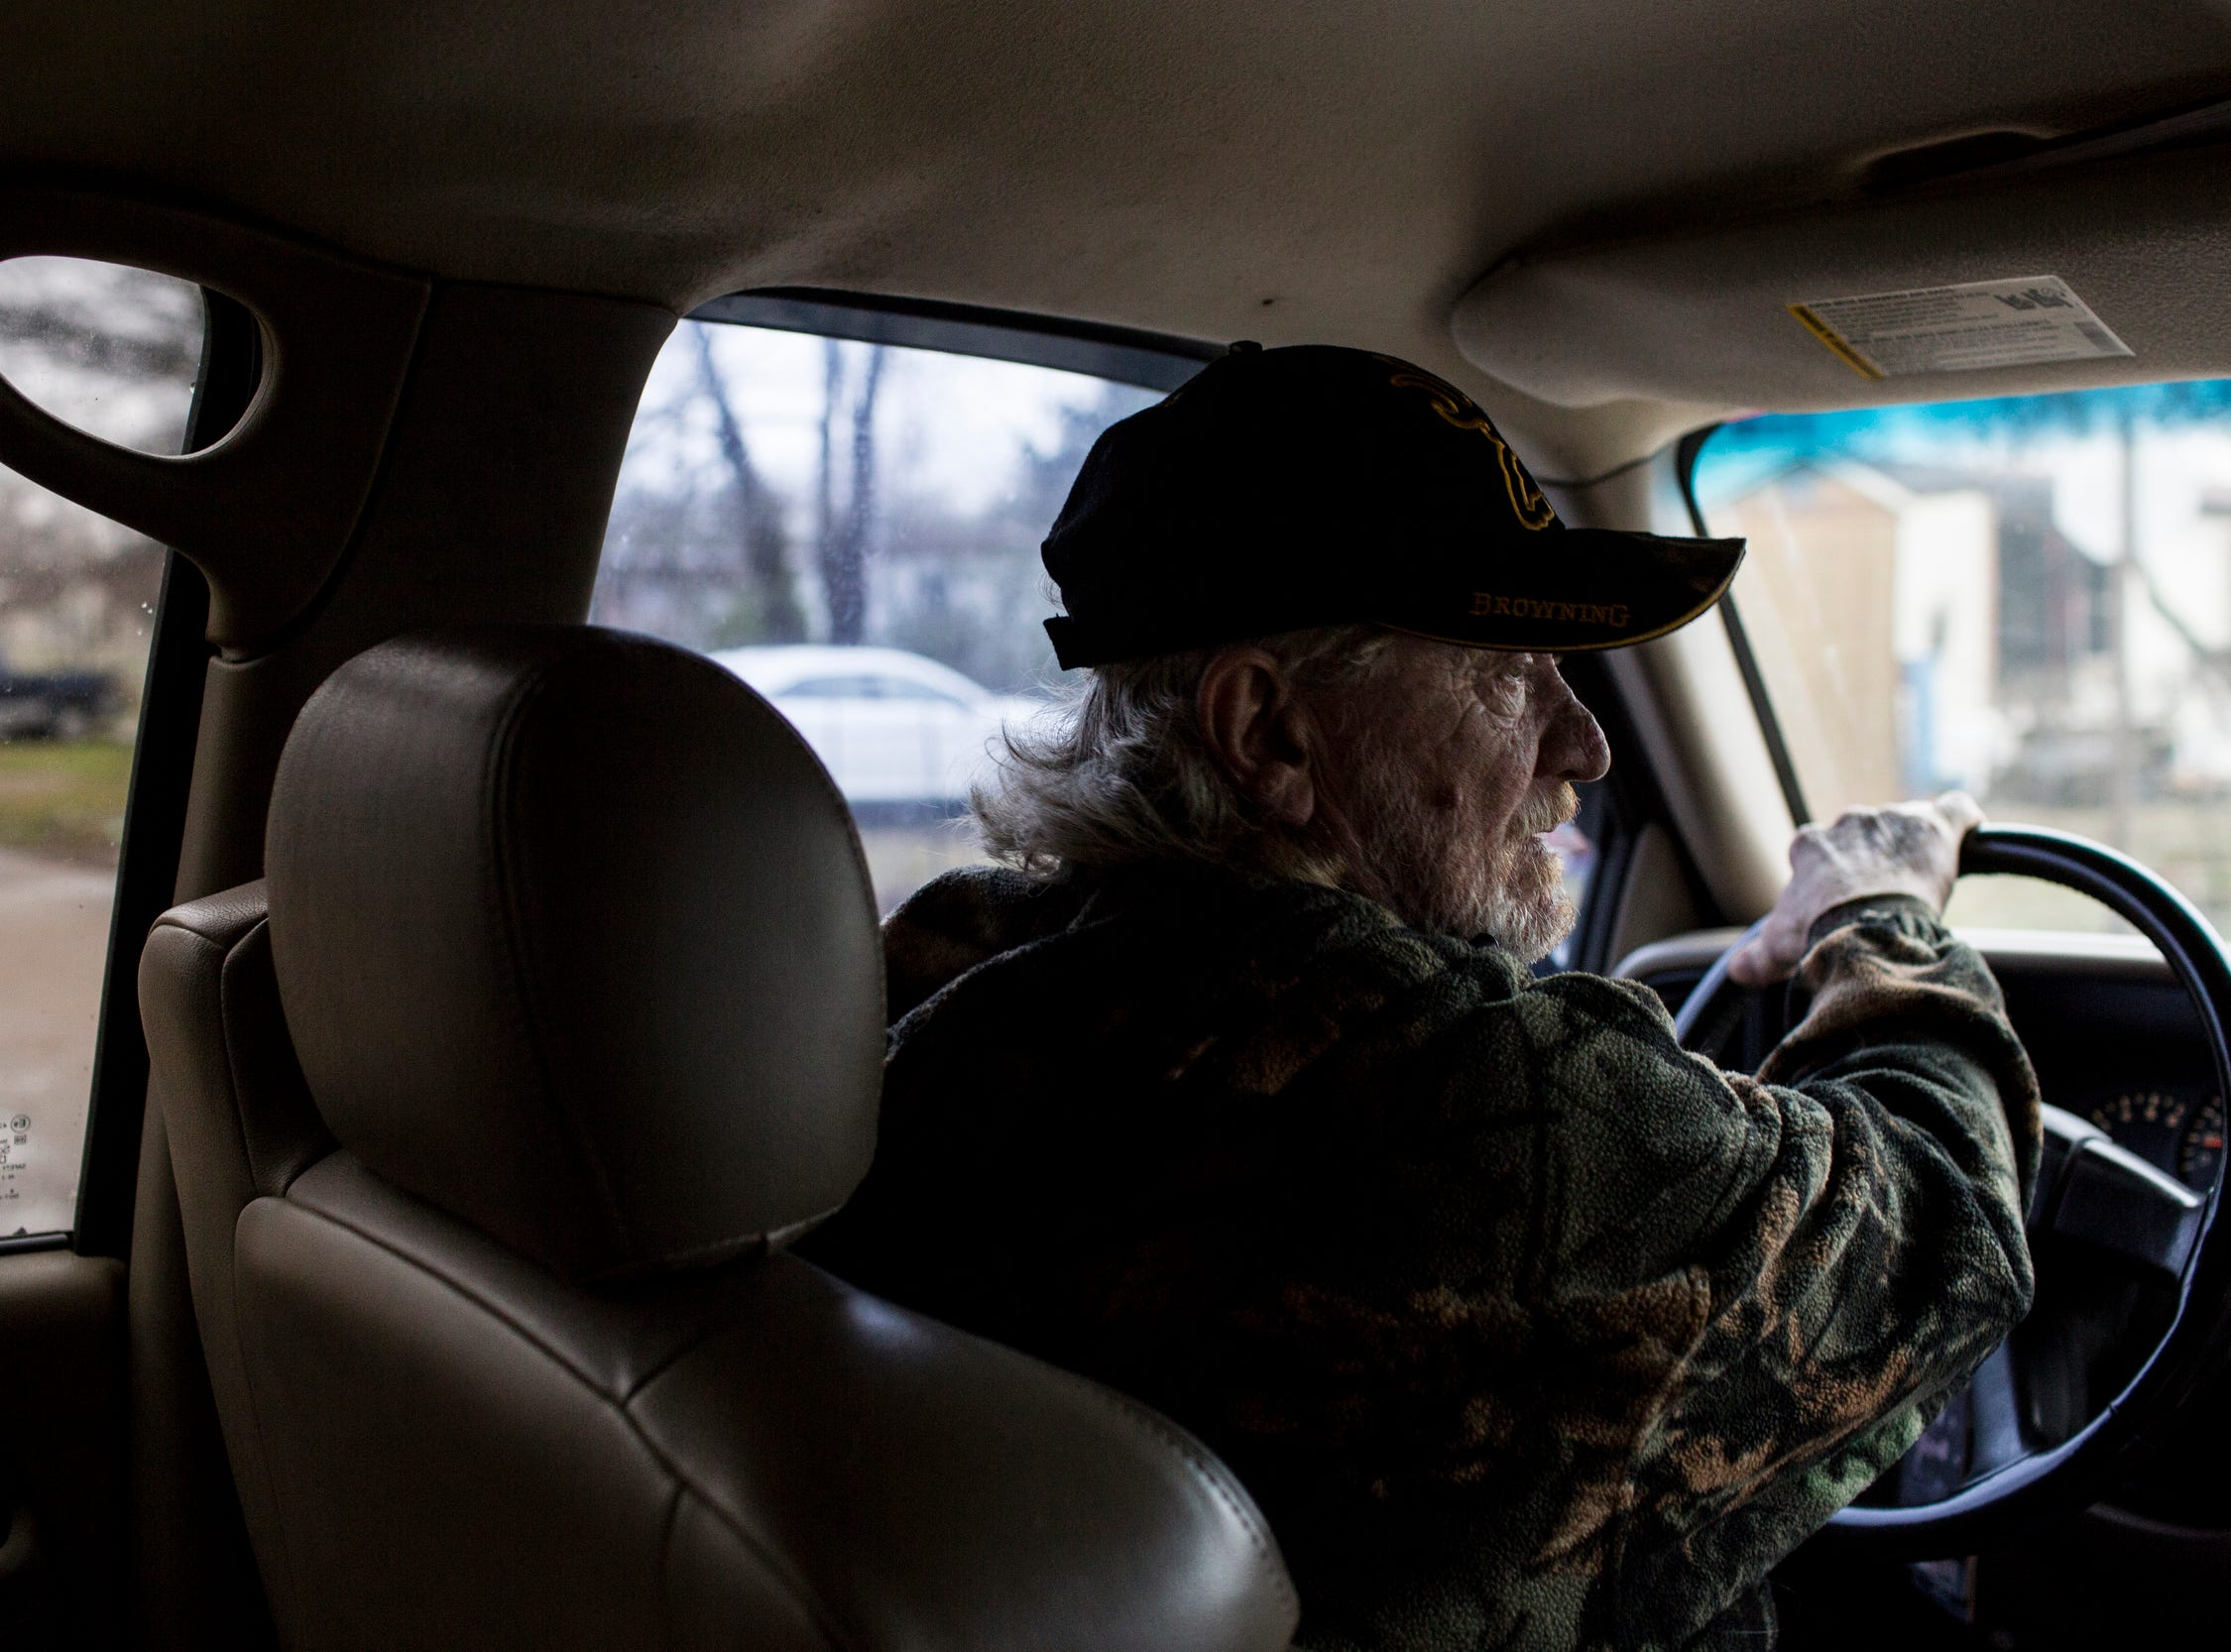 January 23, 2019 - David Carnes, a member of the Lakeshore Community Improvement Group, drives around the Lakeshore community while showing where issues with raw sewage have been seen.